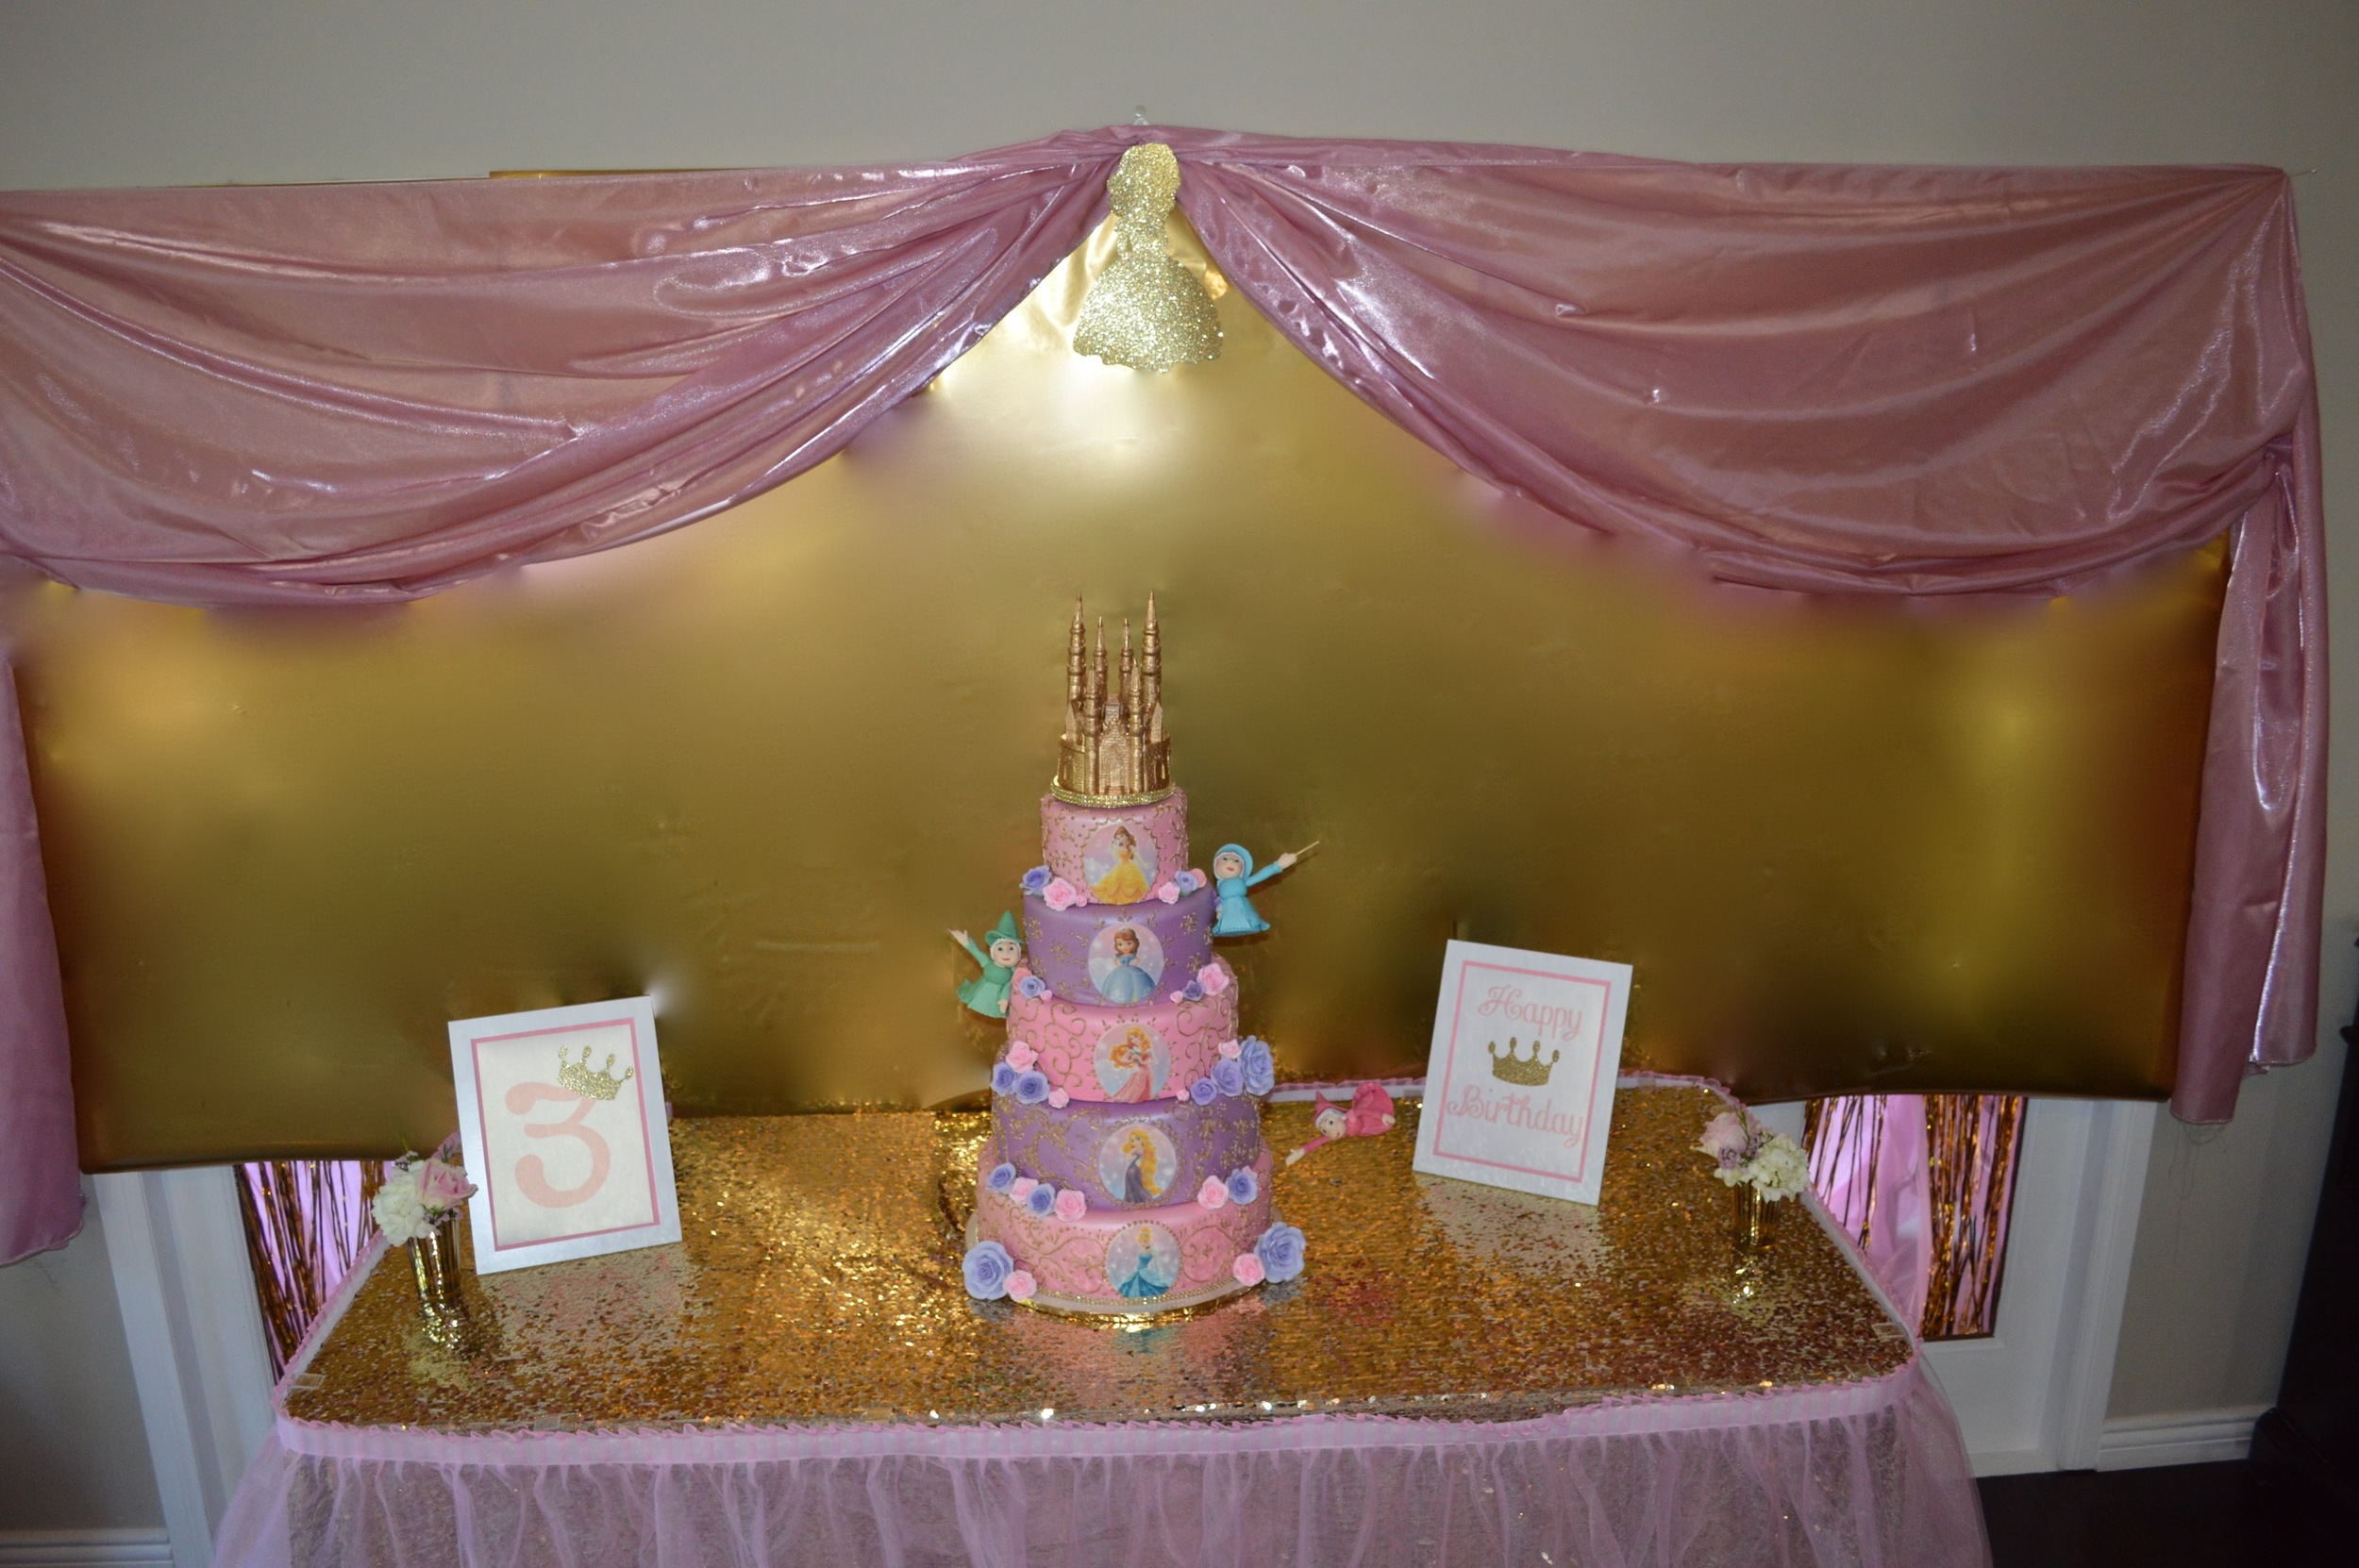 Backdrop created by Down Emery Lane. Cake by Sweet Art Bakery.